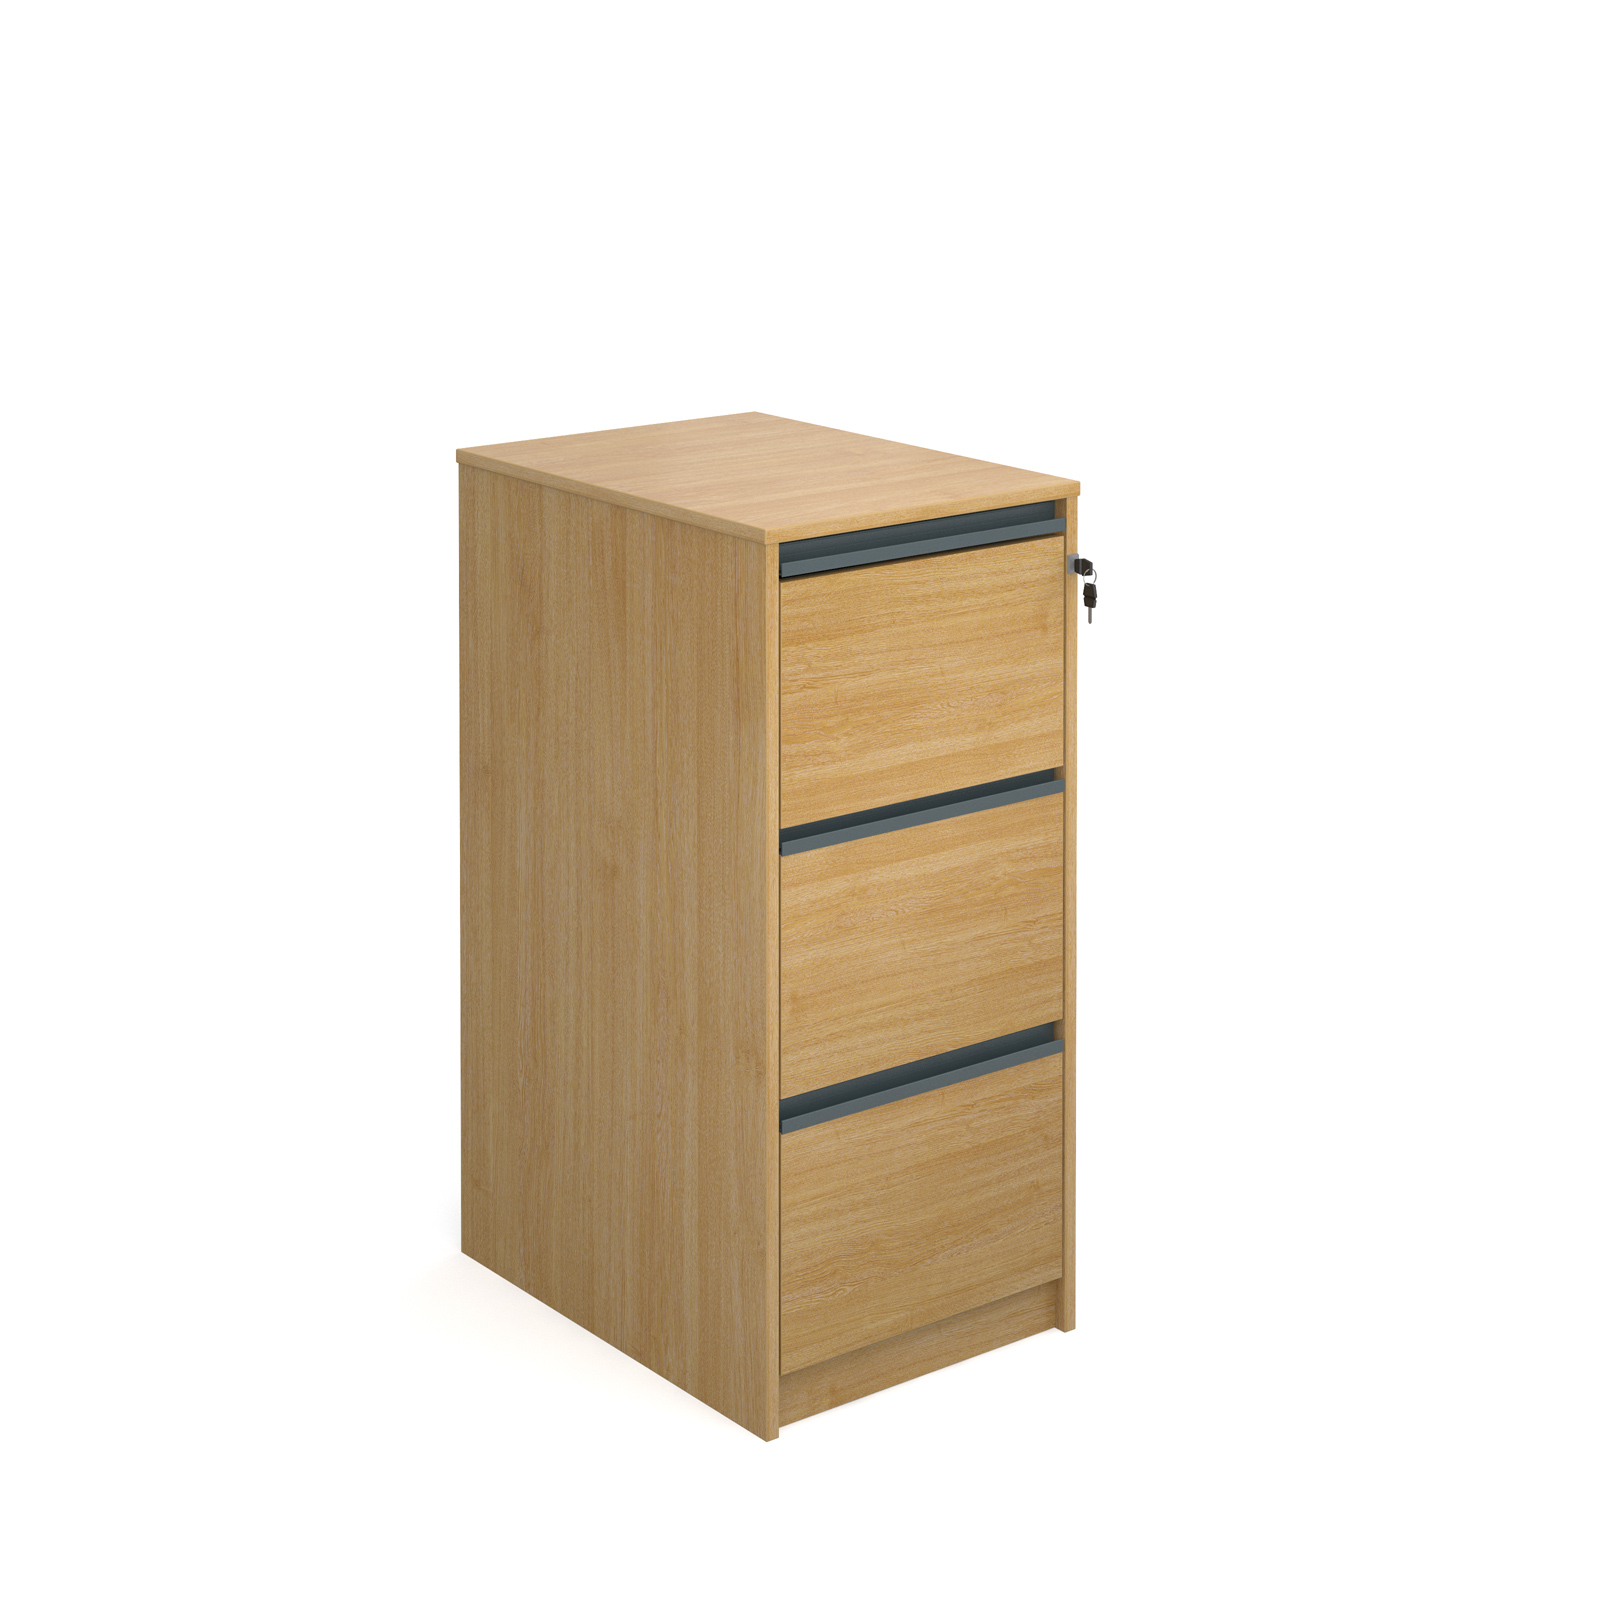 Filing cabinet with 3 drawers and graphite finger pull handles 1038mm high - oak